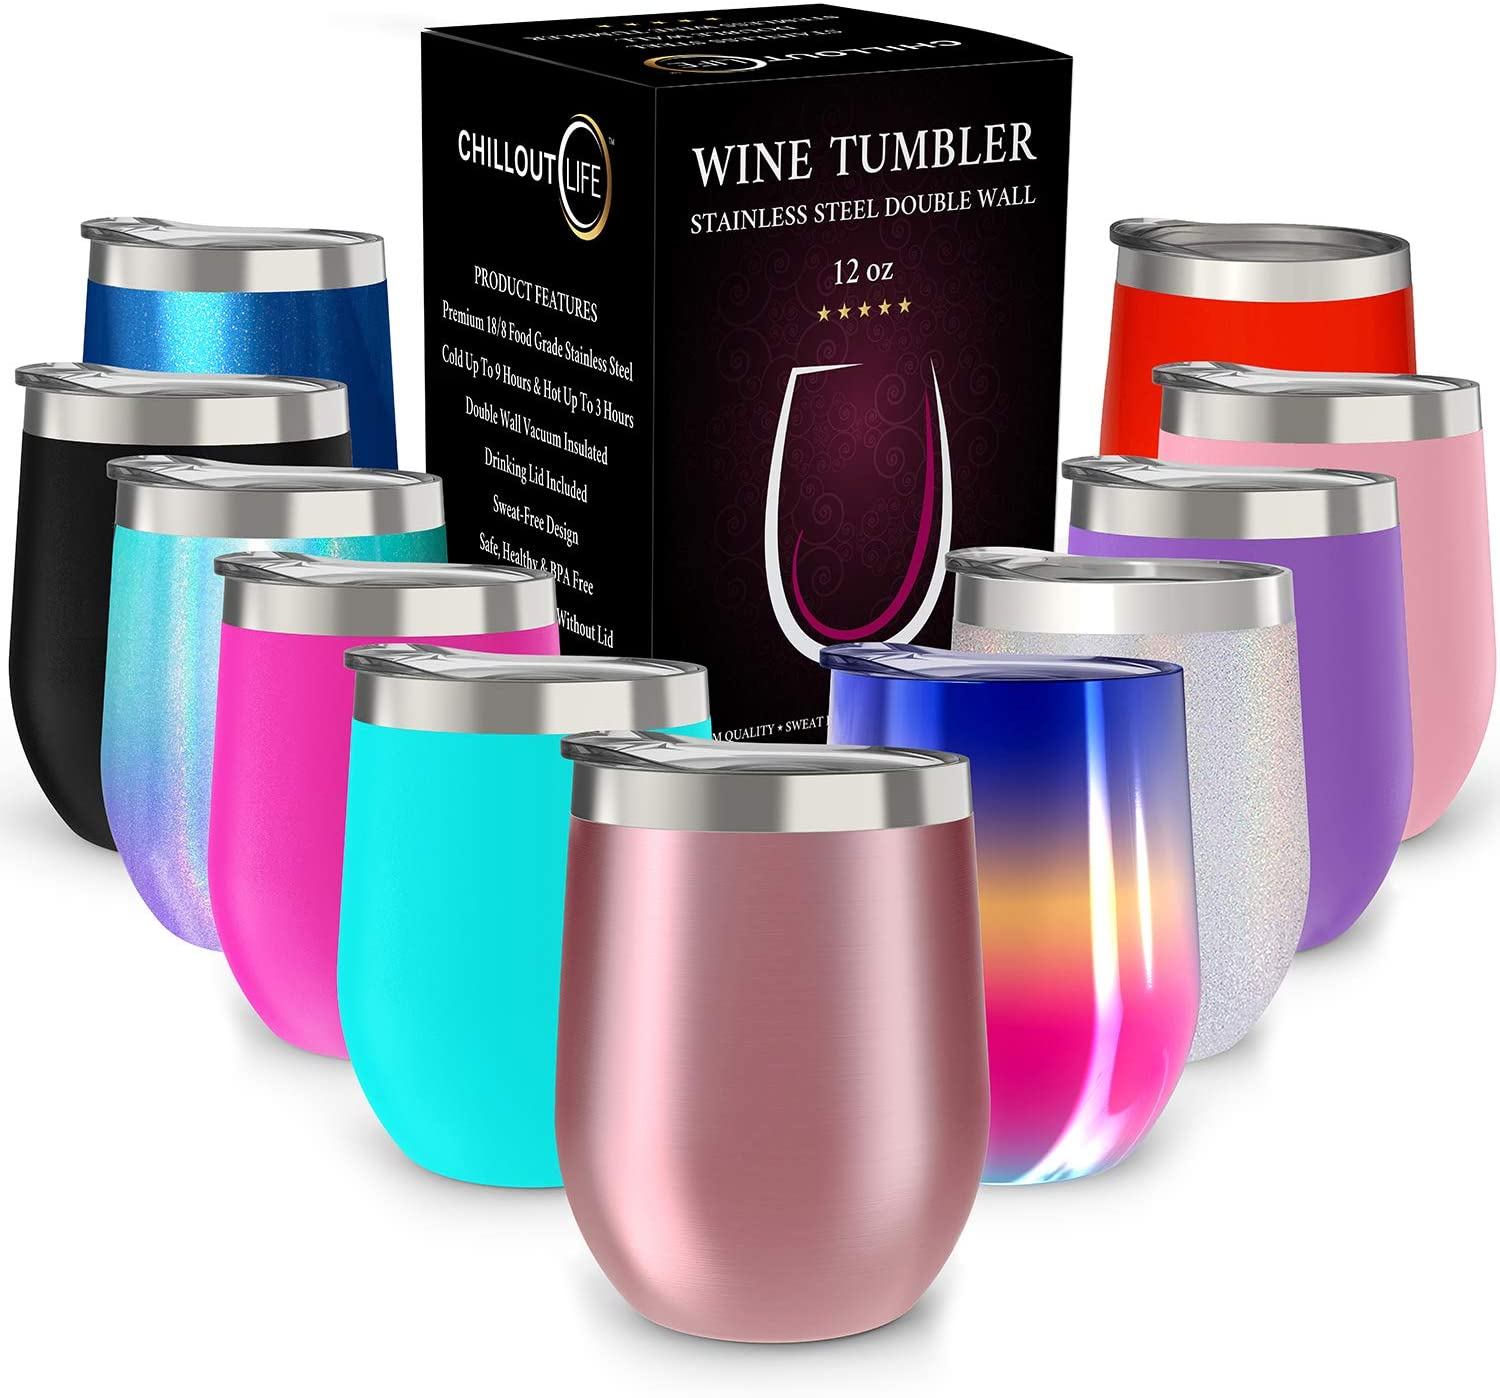 CHILLOUT LIFE 12-Ounce Stainless Steel Wine Tumbler With Lid